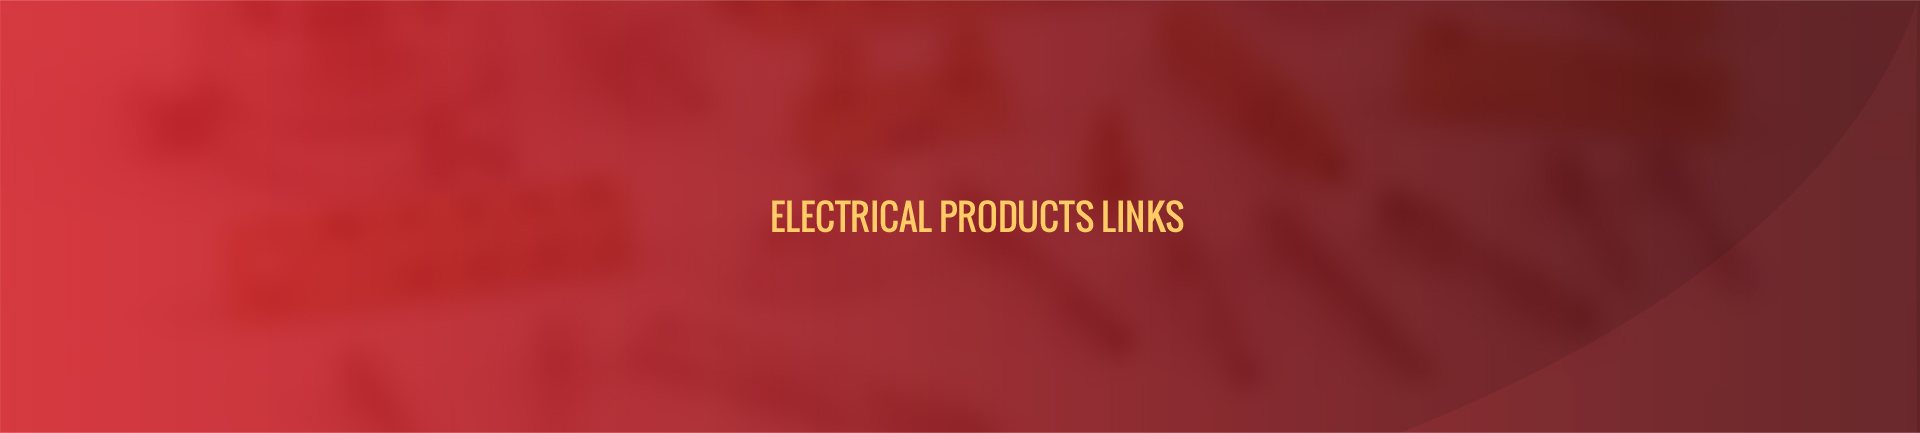 electrical-links-banner